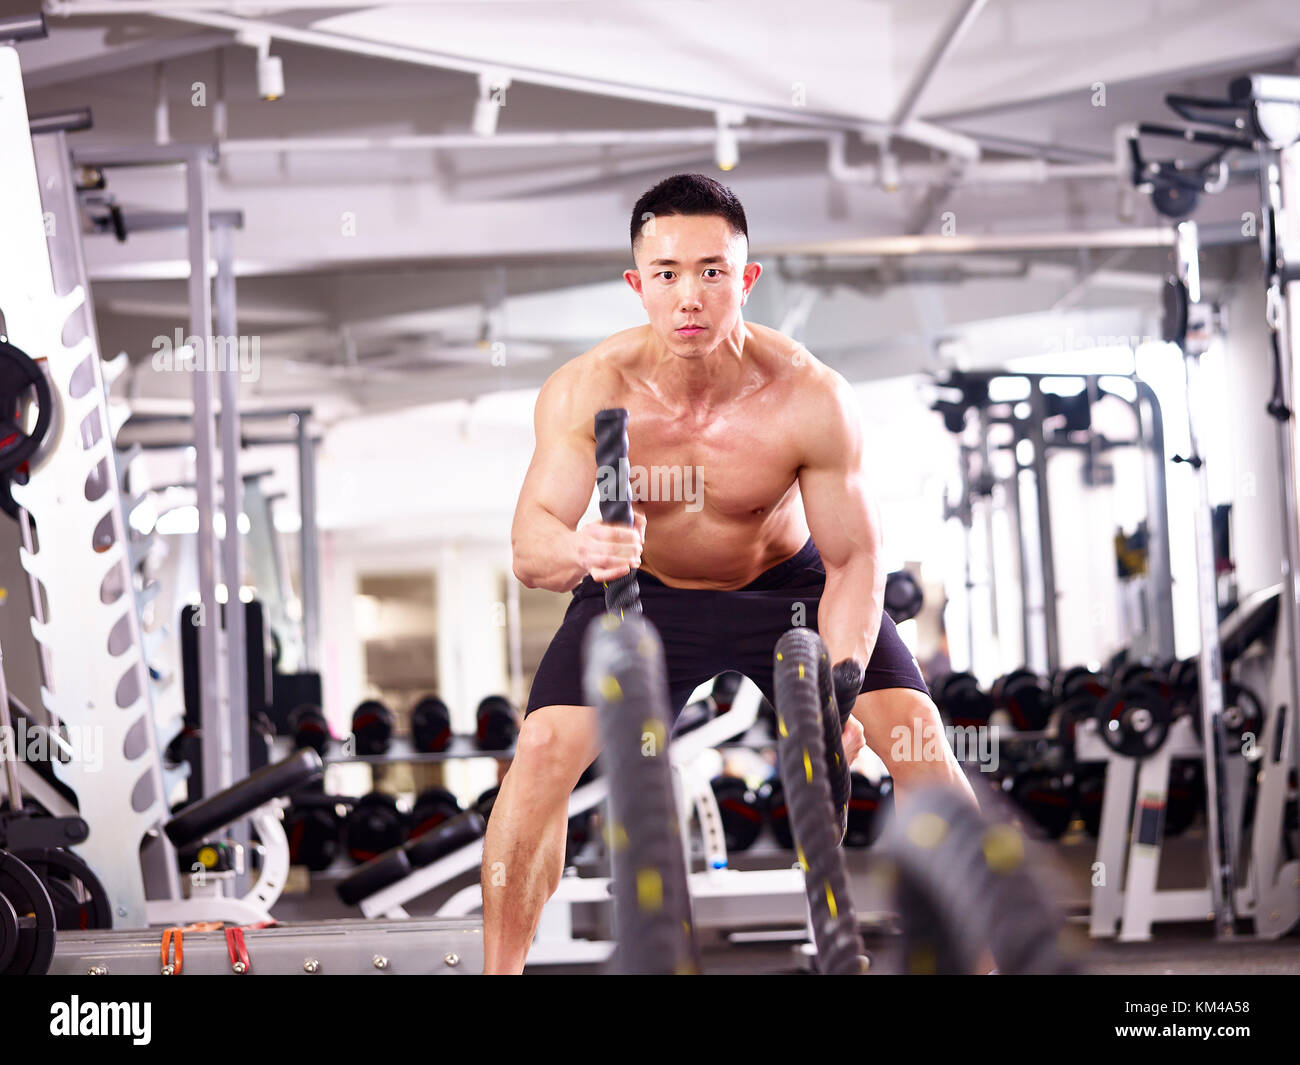 asian male bodybuilder working out in gym using battle ropes. - Stock Image